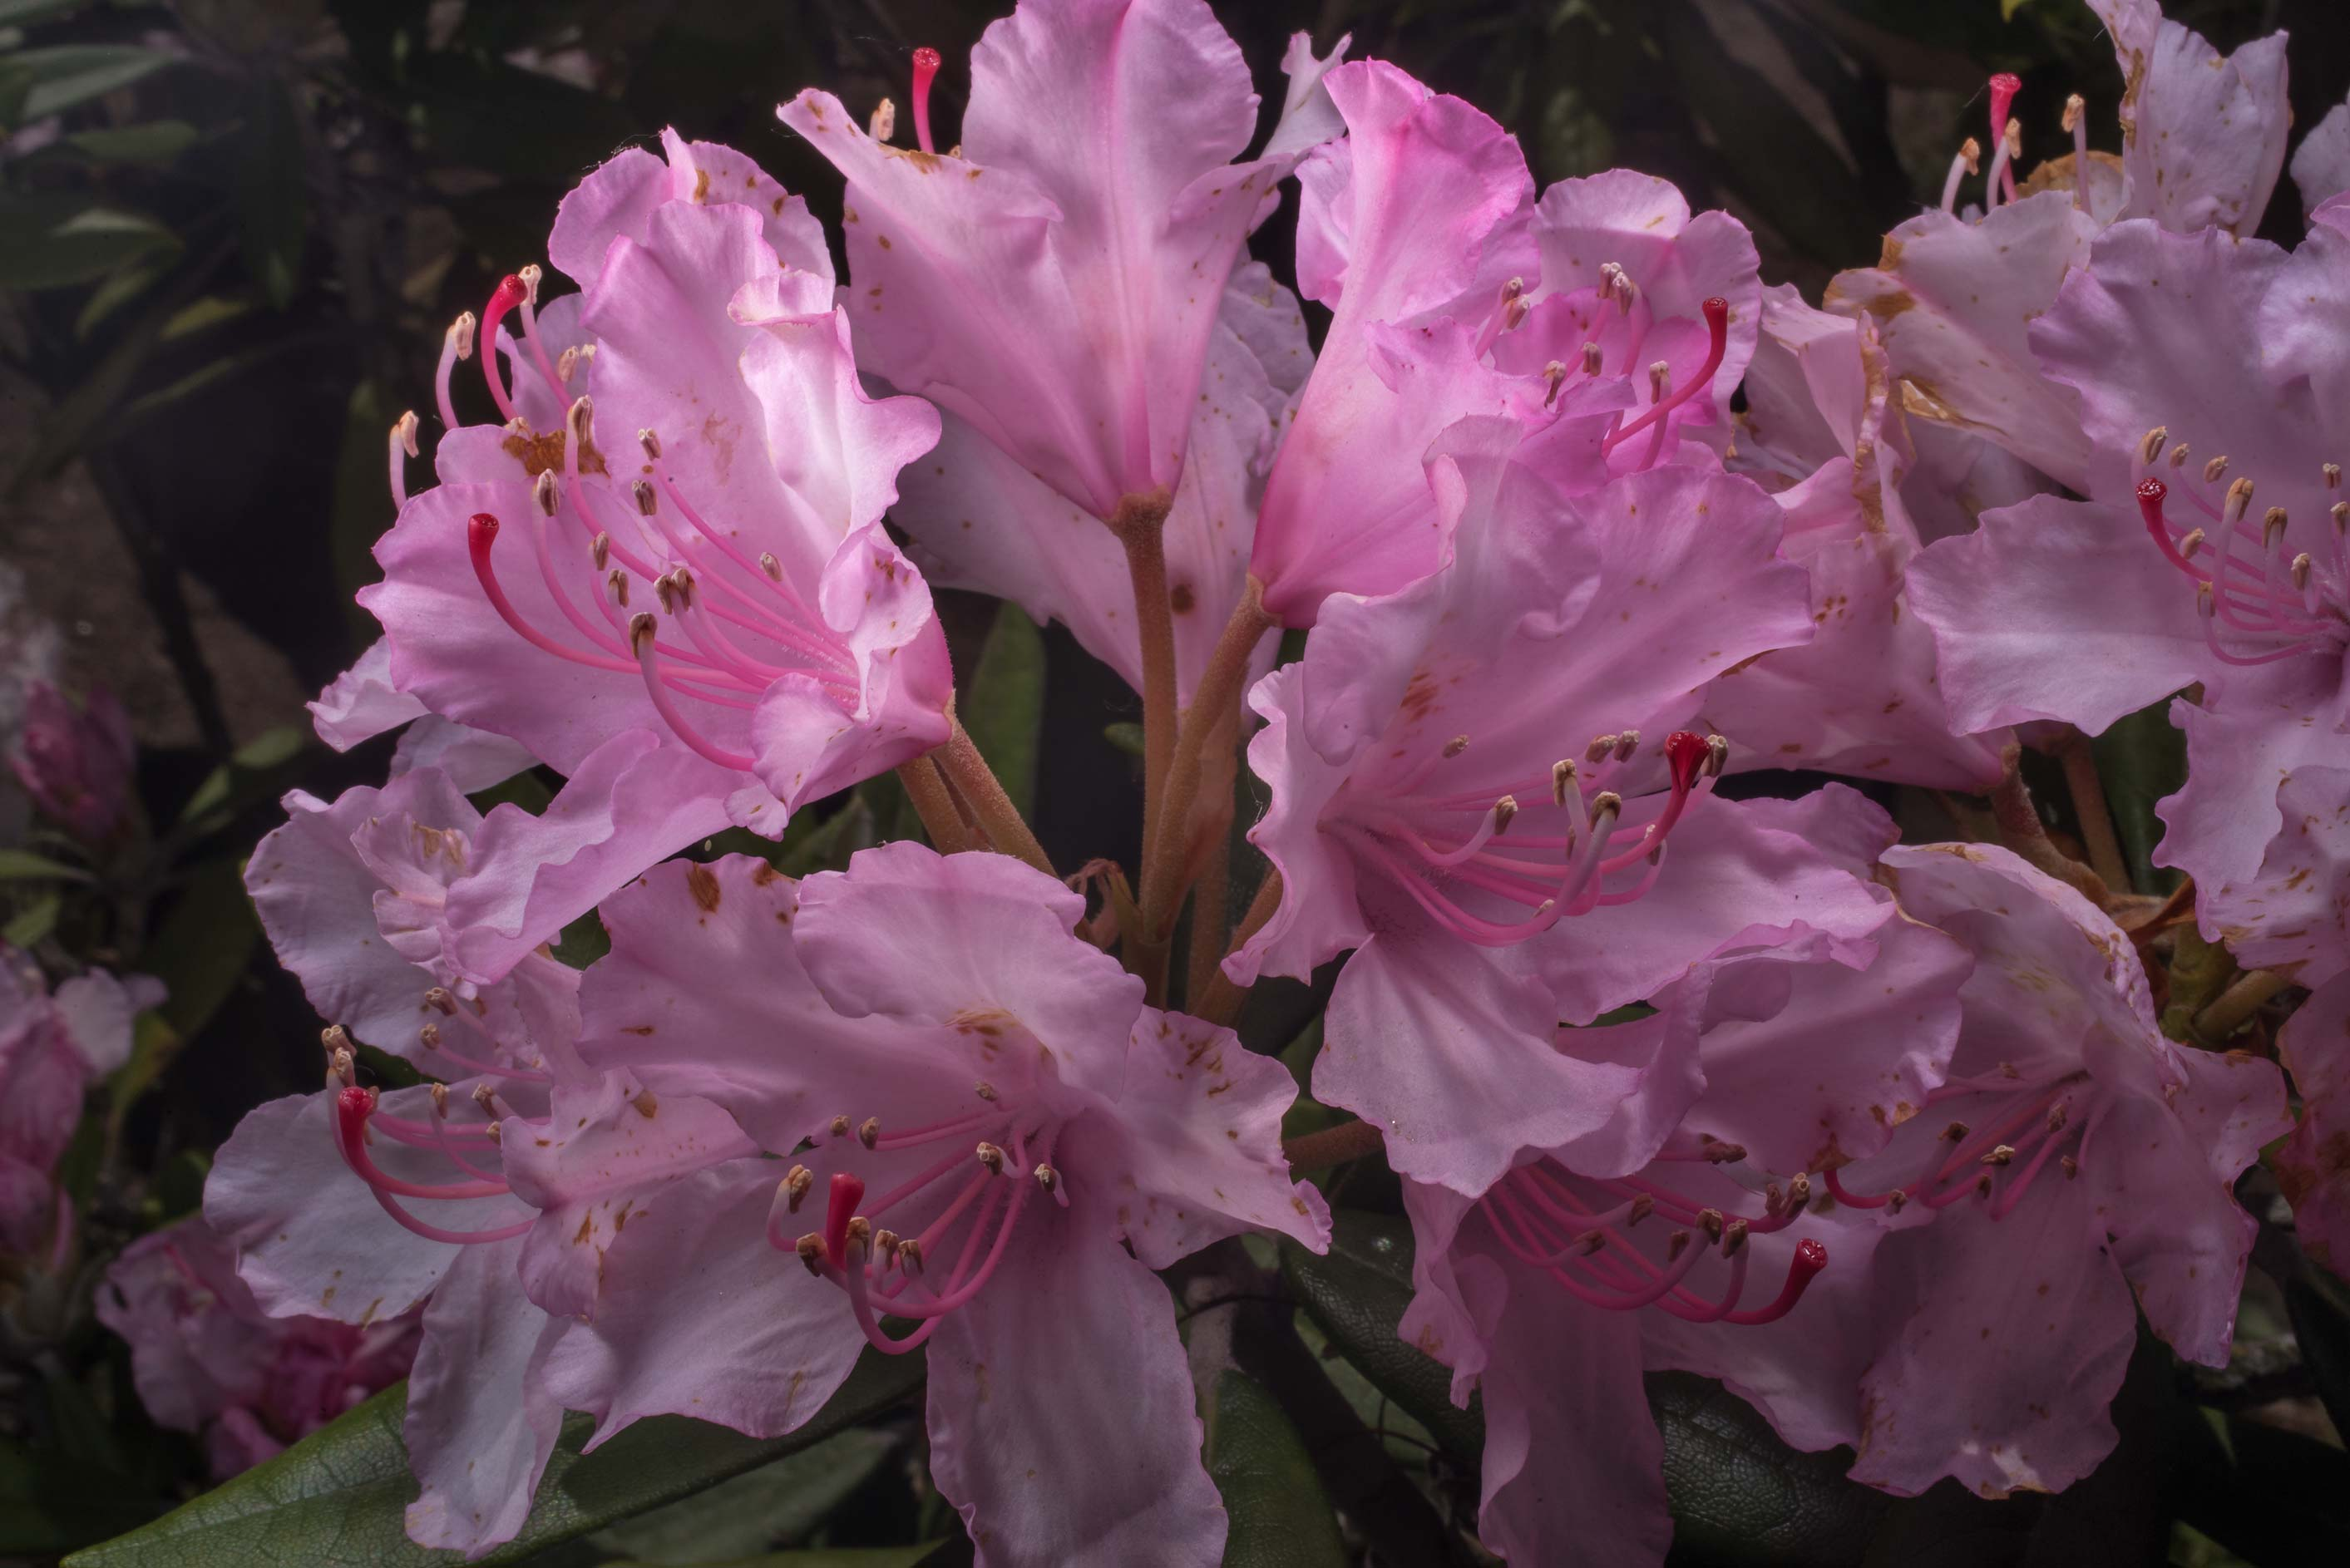 Large pink flowers of azalea (Rhododendron) in...Institute. St.Petersburg, Russia